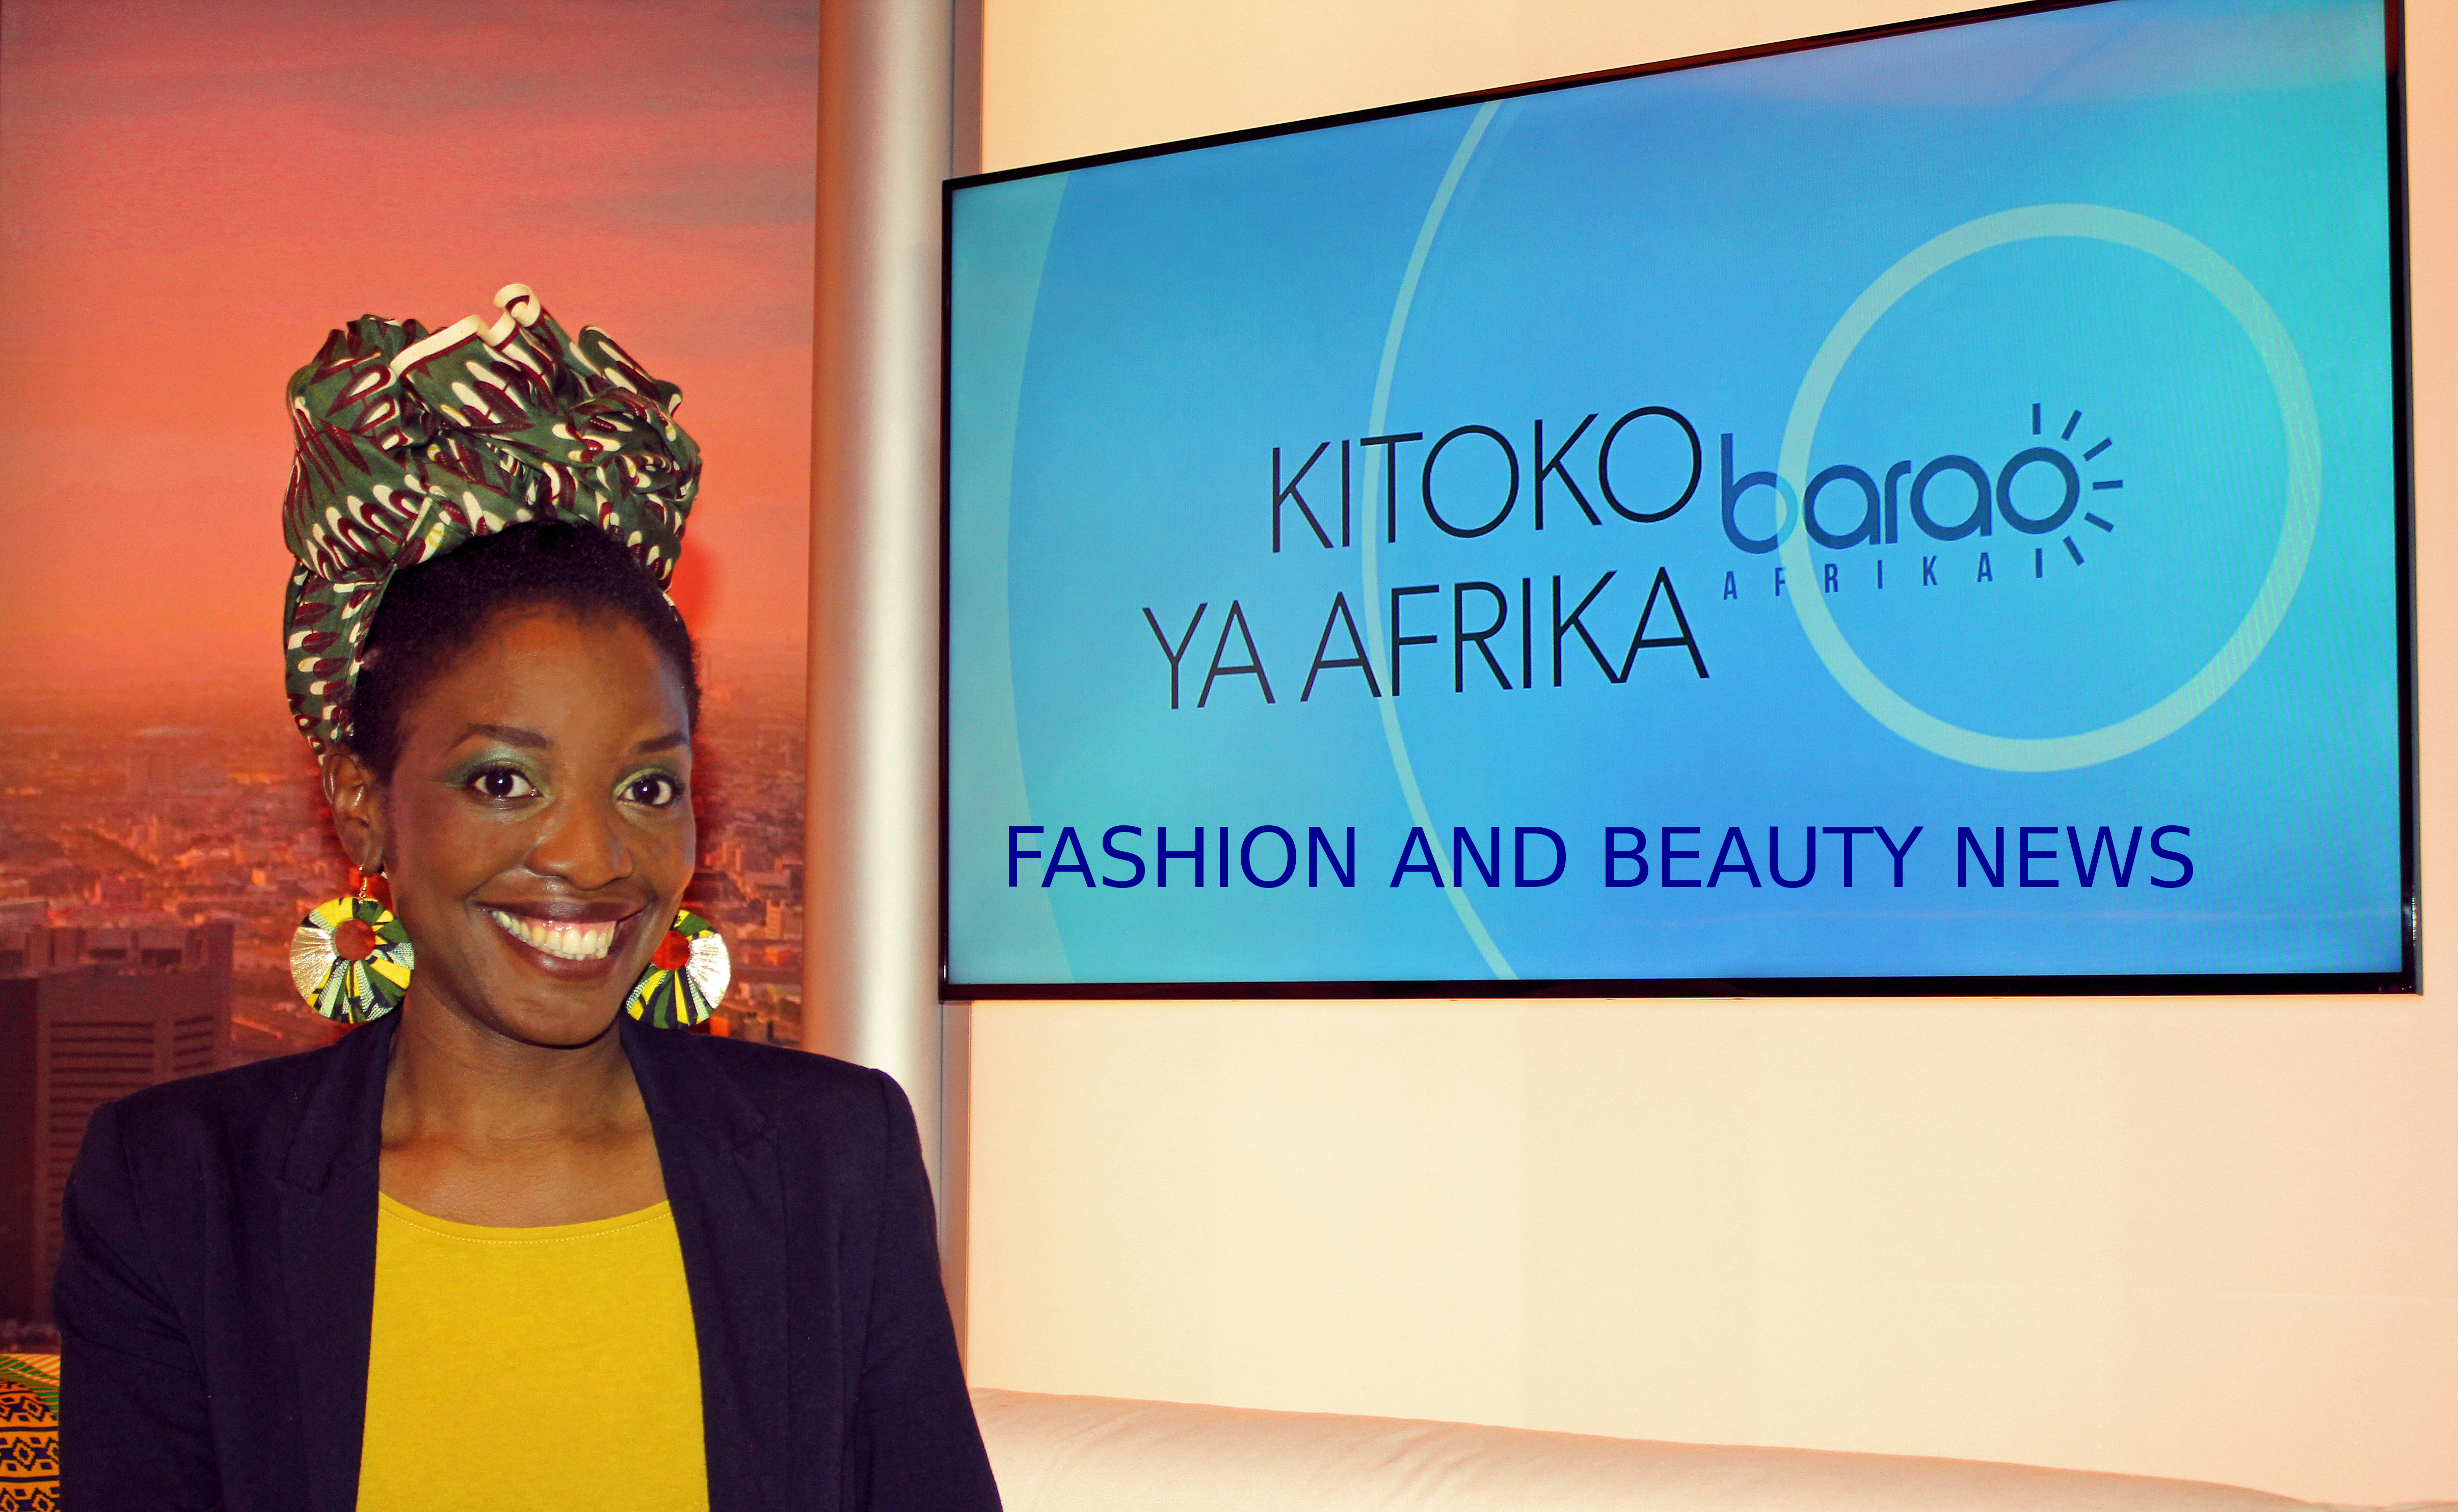 fashion adn beauty news vox africa barao afrika